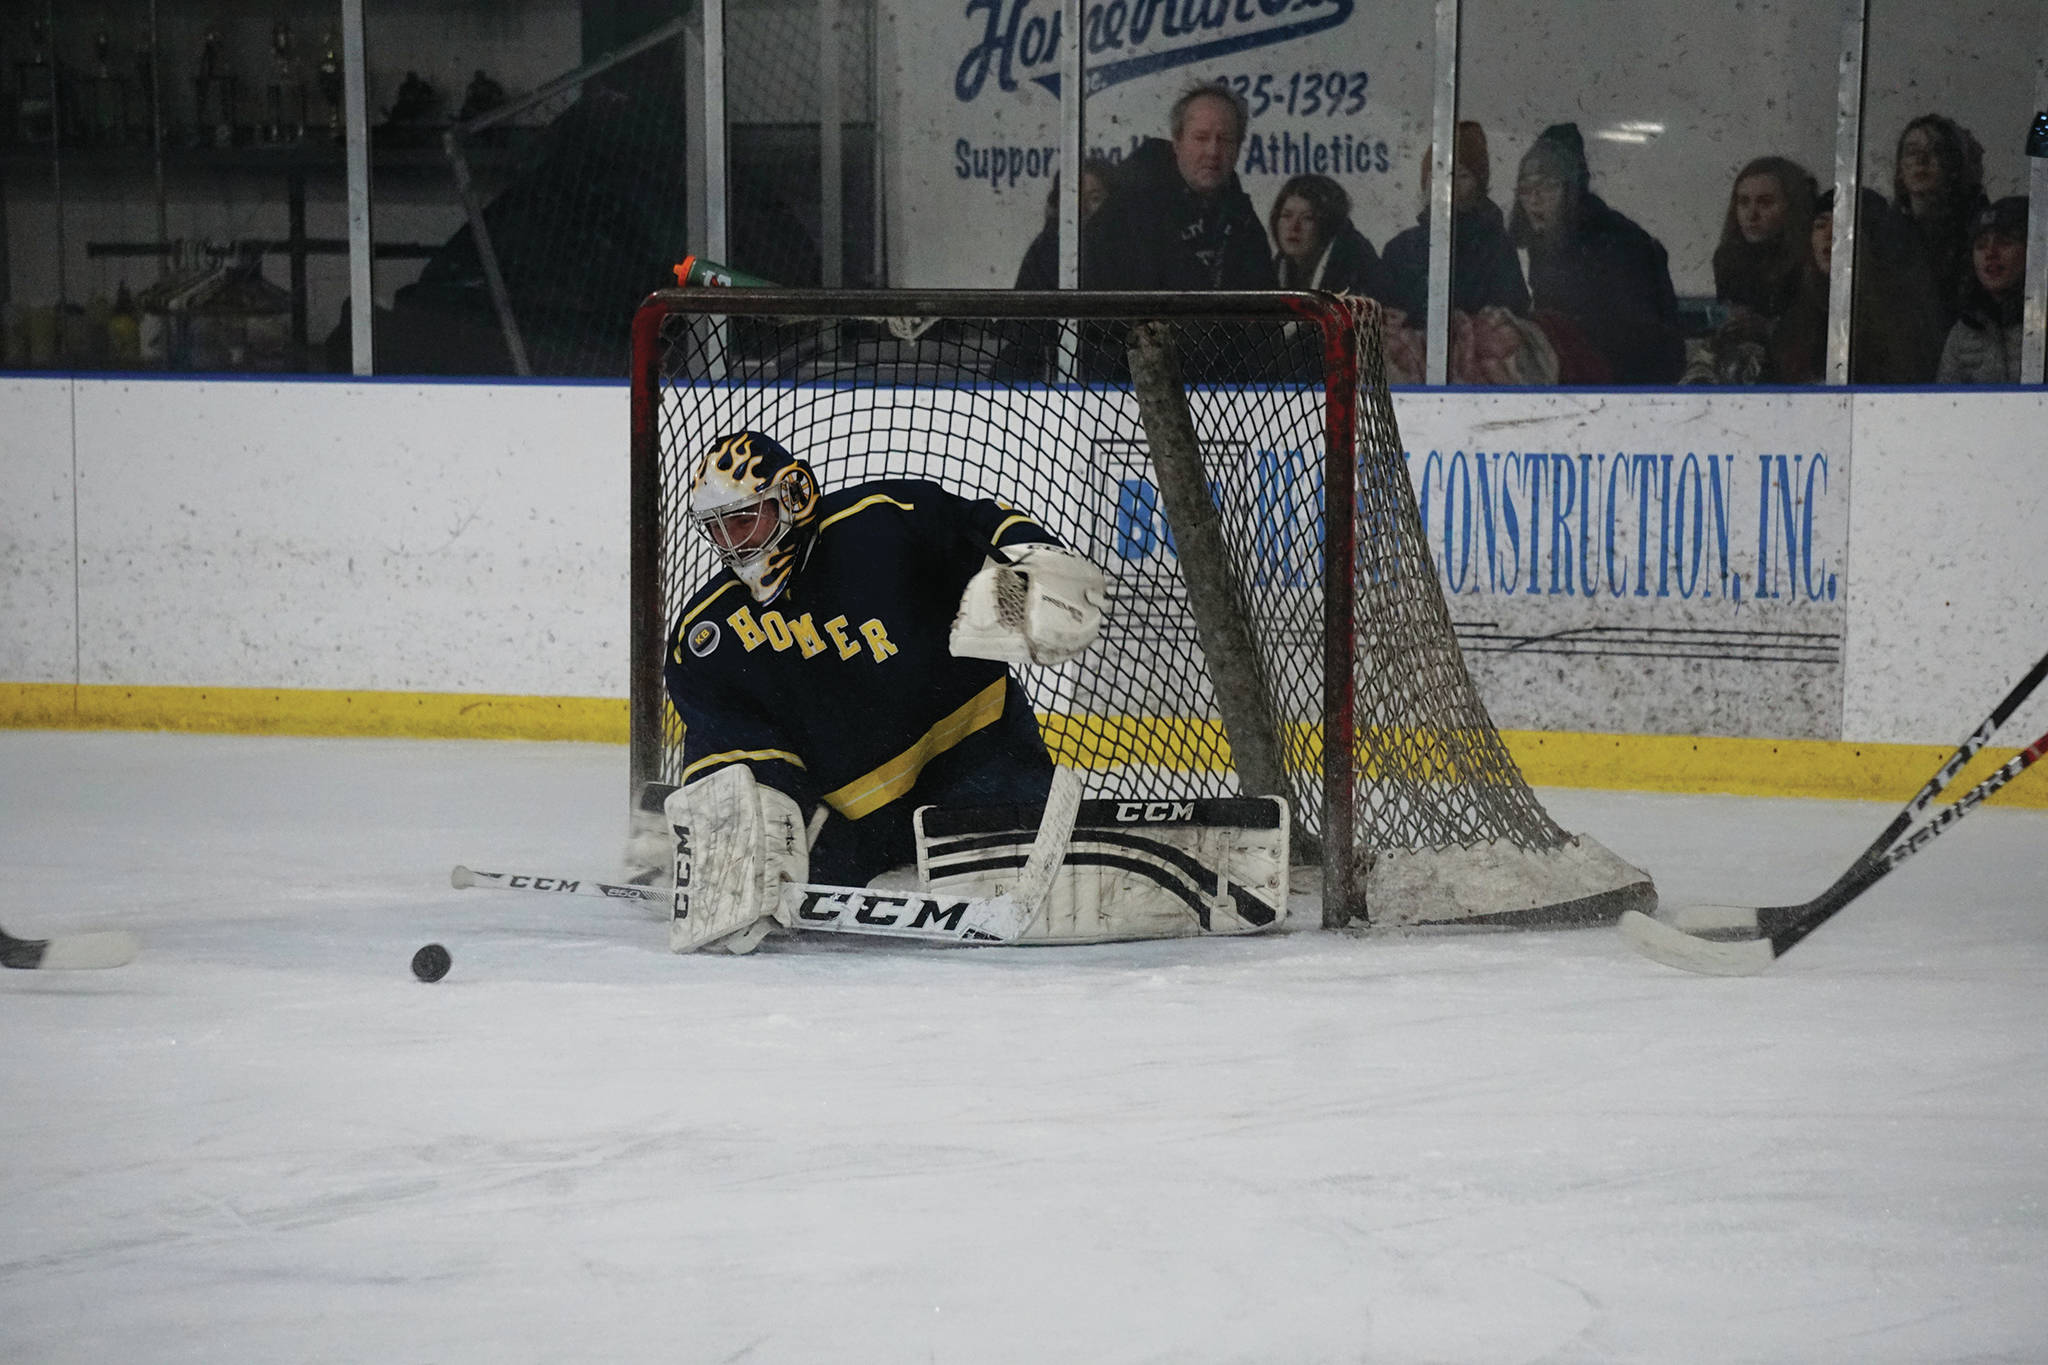 Homer High alumnus Alex Sanarov moves to block a shot during an alumni/alumnae hockey game last Friday, Dec 27, 2019, at the Kevin Bell Ice Arena in Homer, Alaska. (Photo by Michael Armstrong/Homer News)